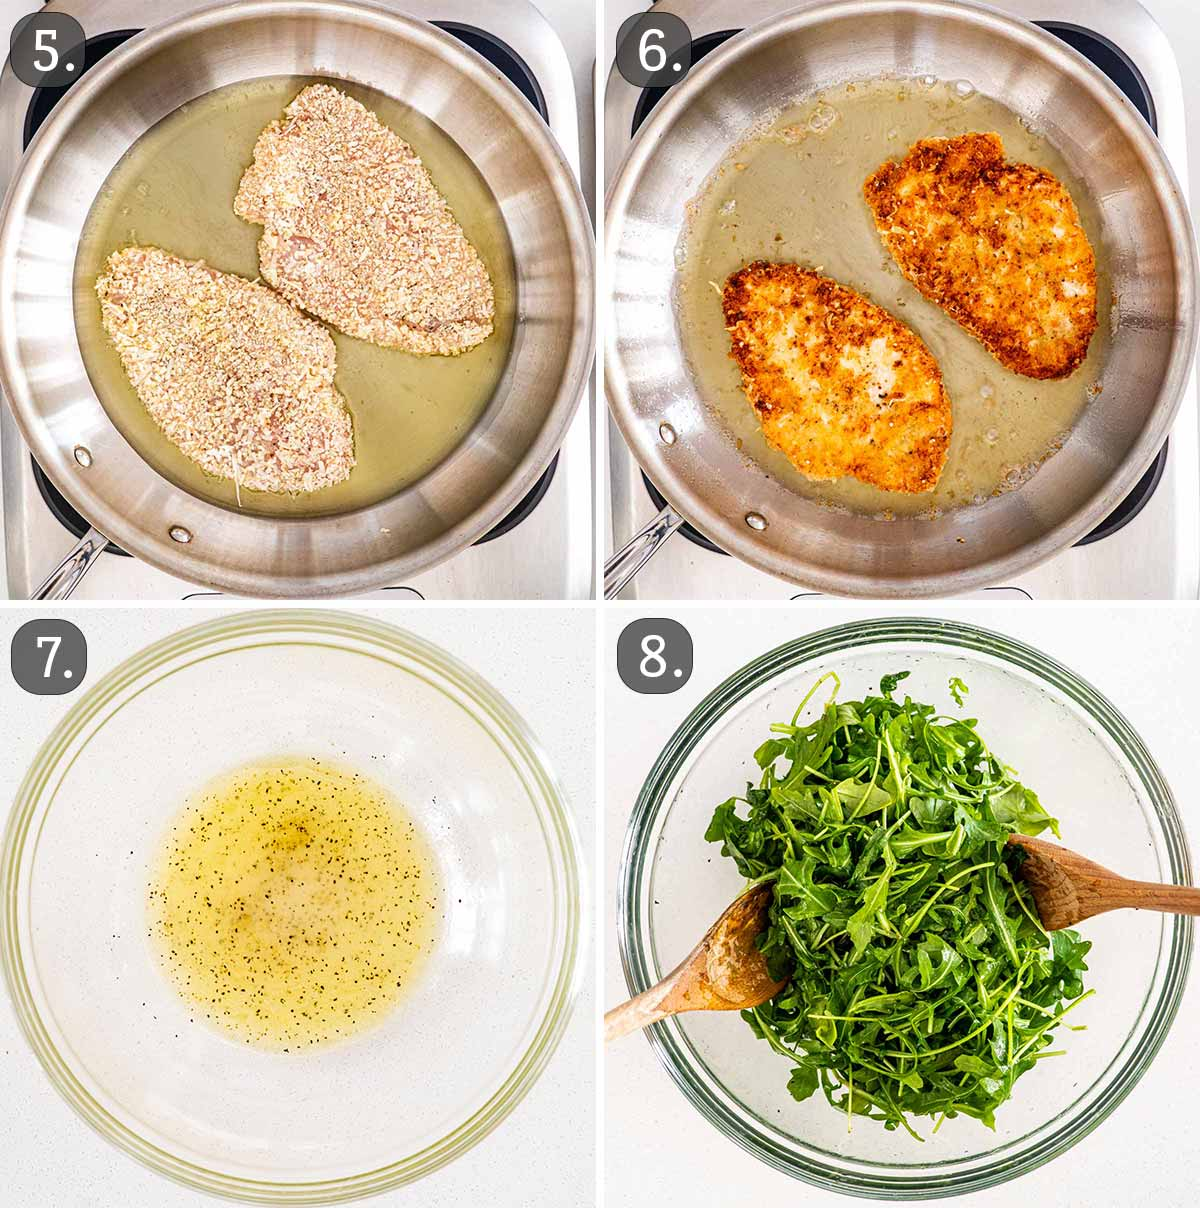 process shots showing how to cook chicken milanese and make arugula salad.